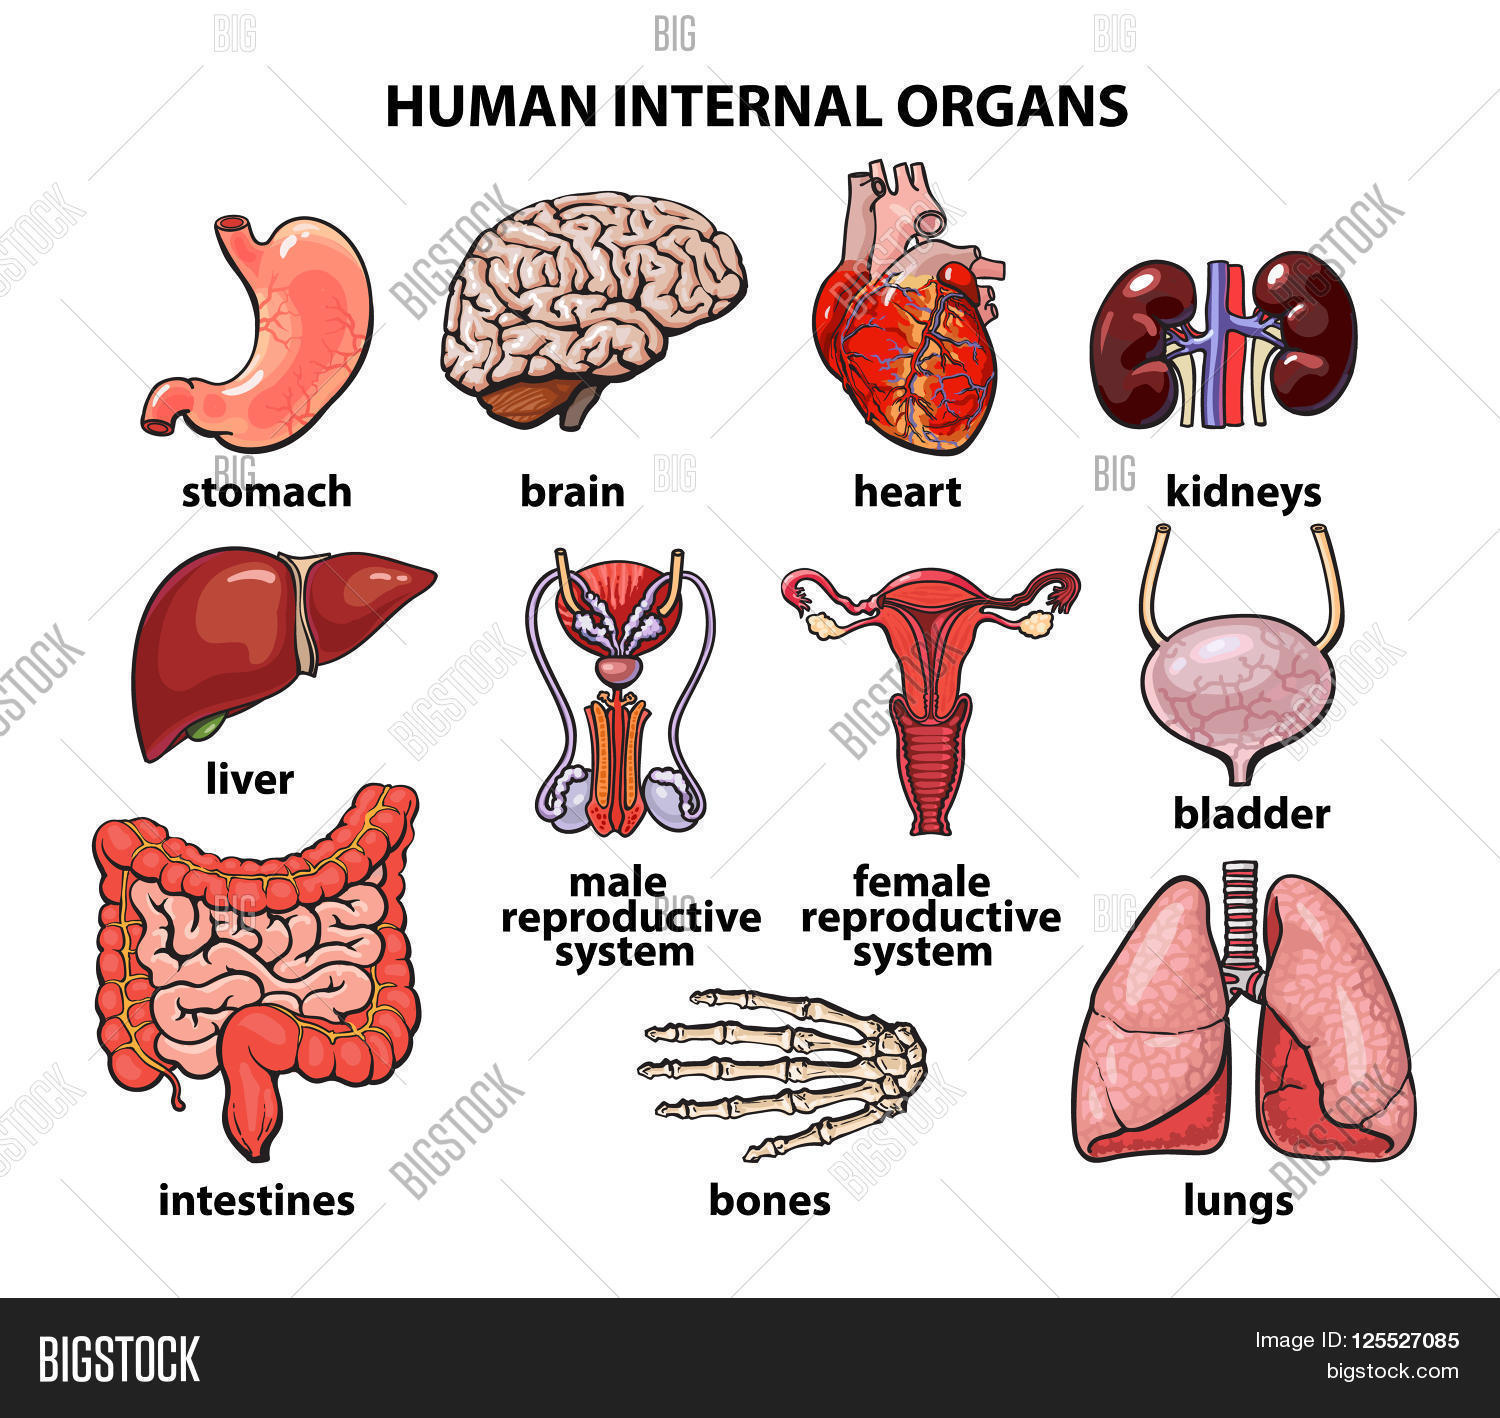 Human Organs Internal Image Amp Photo Free Trial